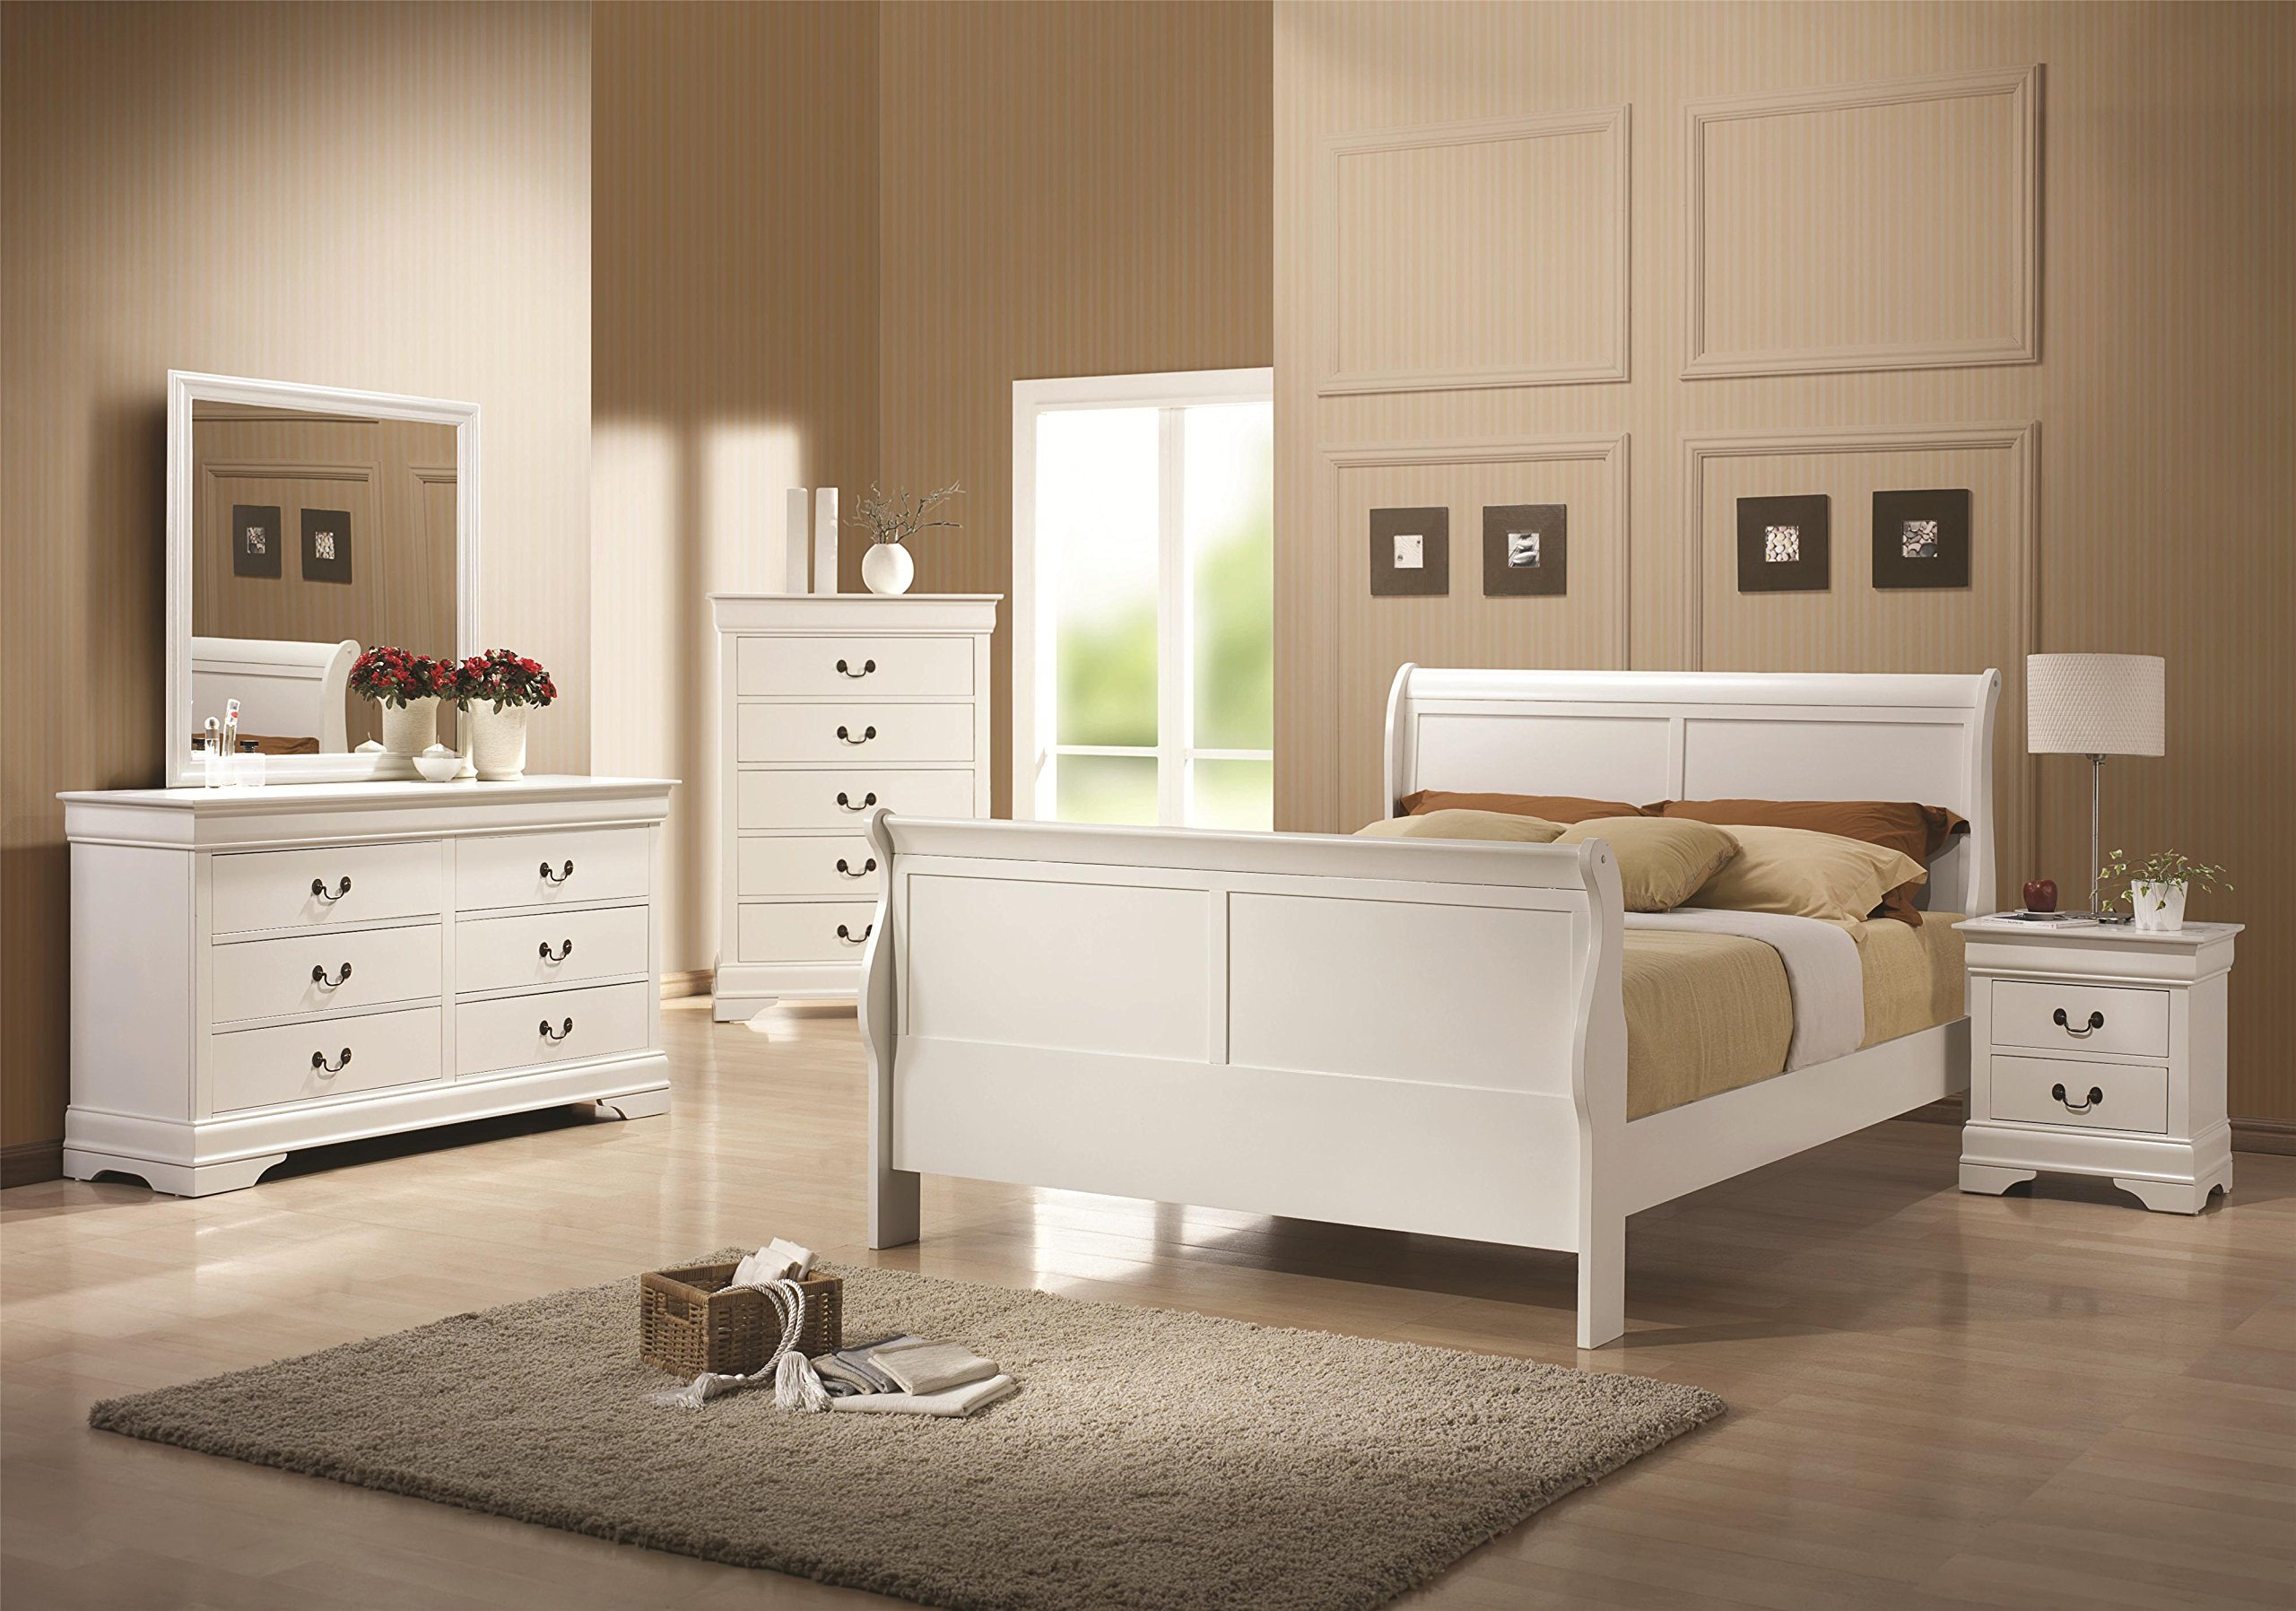 5 Pc Elizabeth Twin Bedroom Collection Bed, Dresser, Chest, Mirror, Nightstand